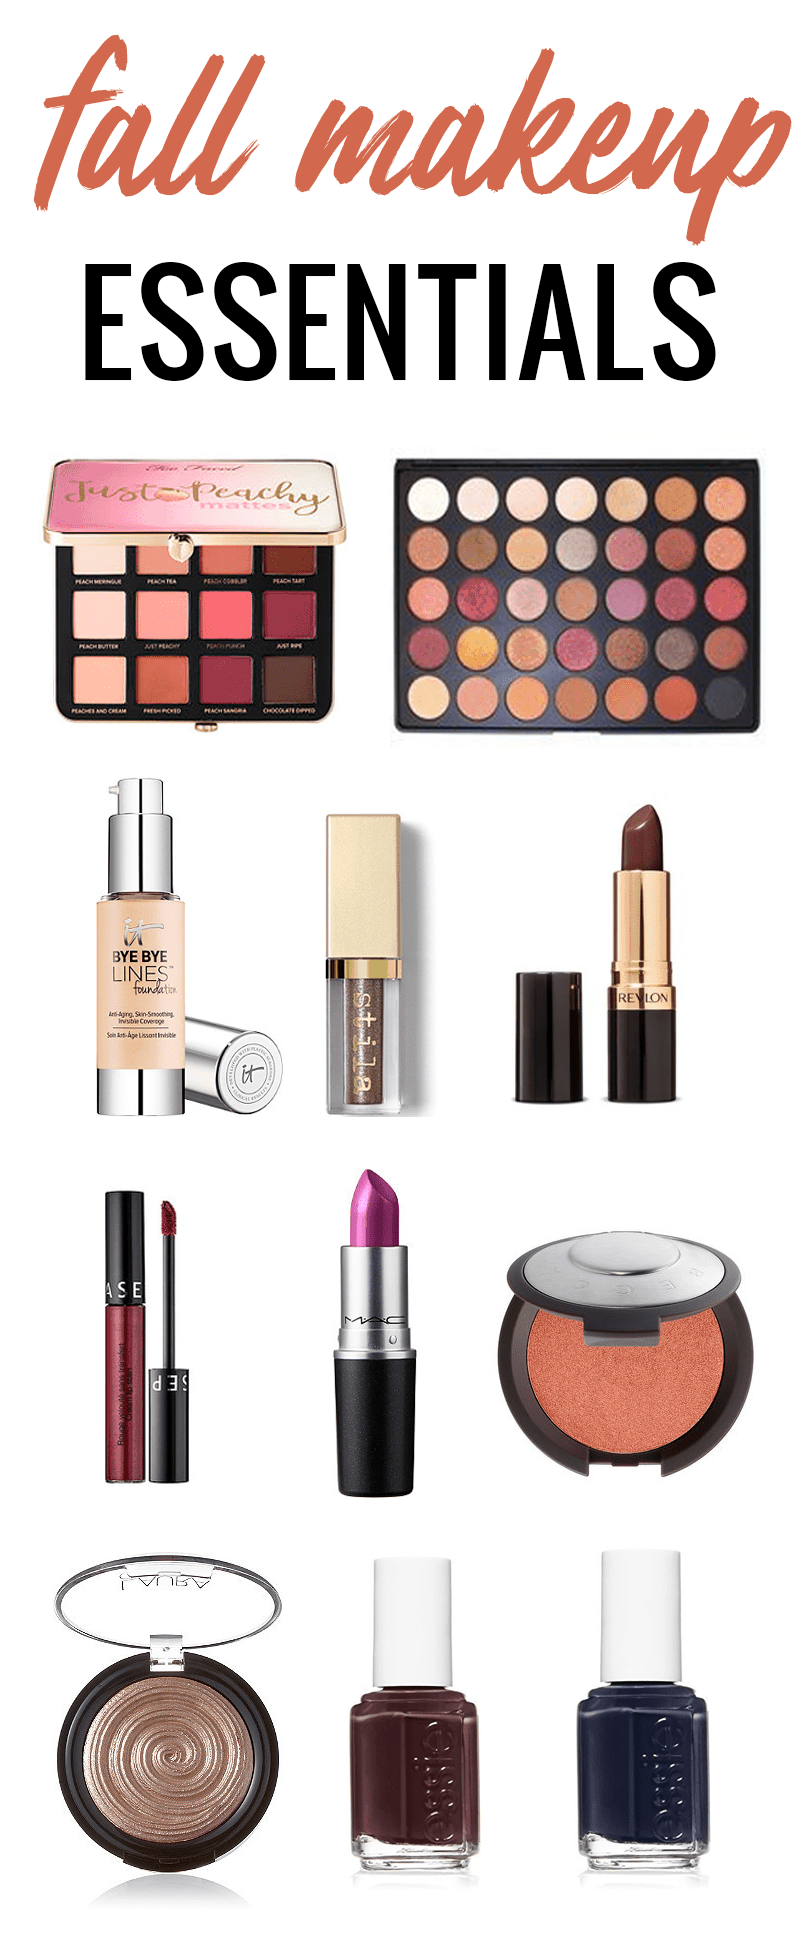 Fall Makeup Essentials You'll Want to Get Your Hands On by Houston beauty blogger Meg O. on the Go